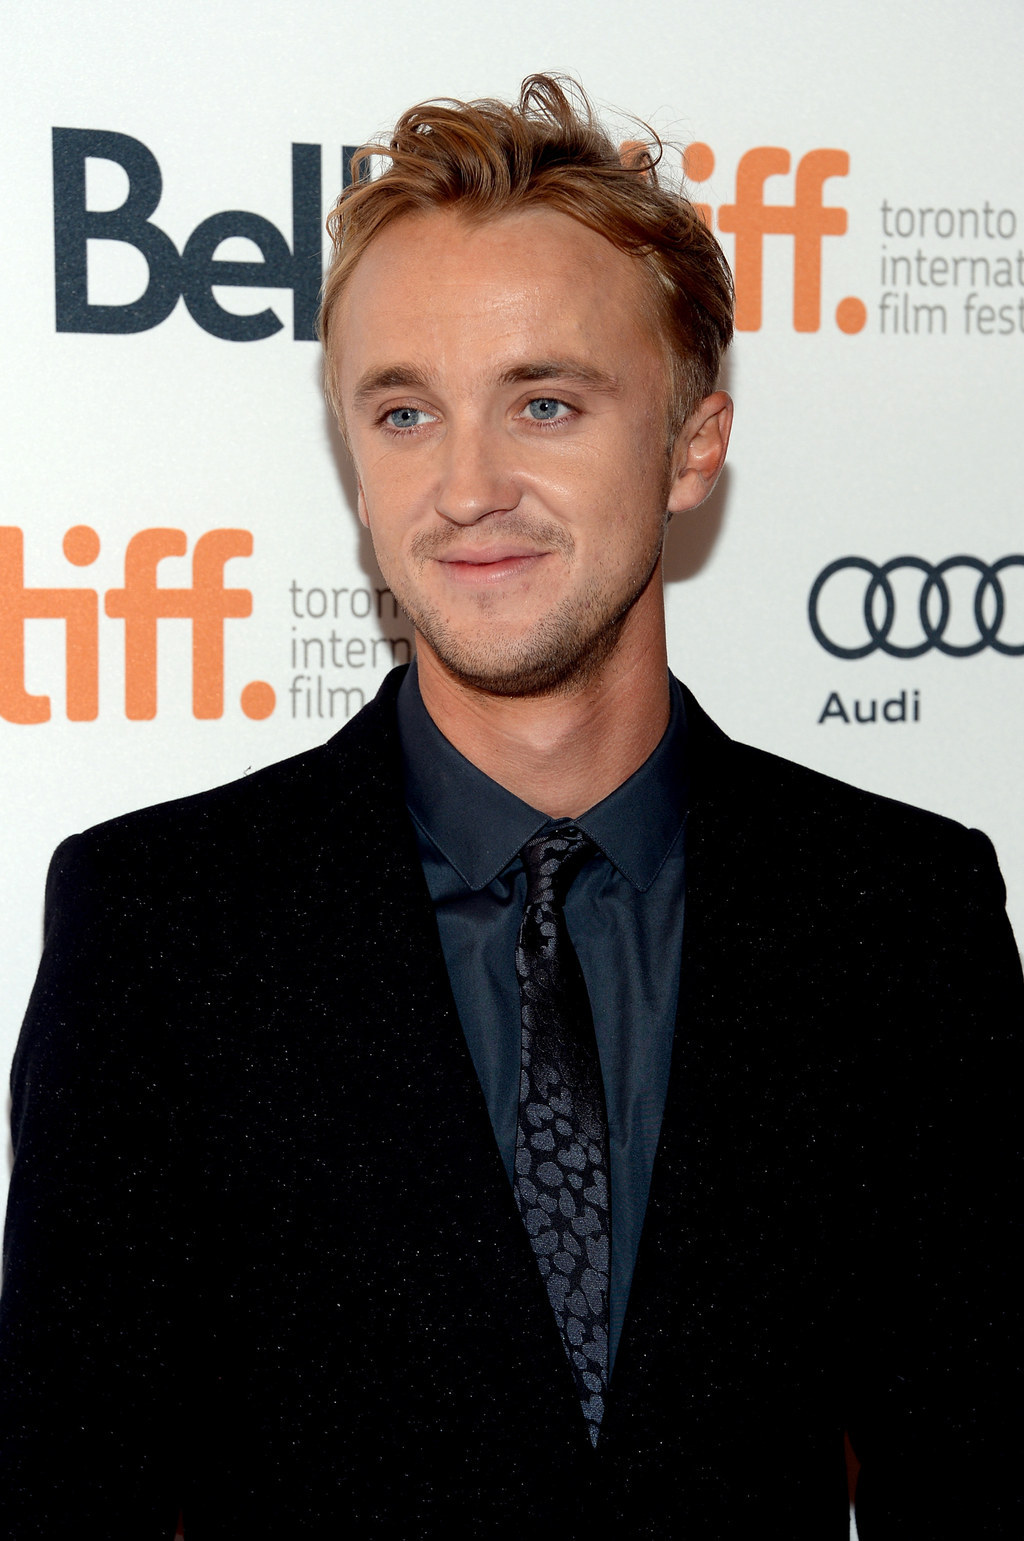 tom felton s year book photo will make you feel but it